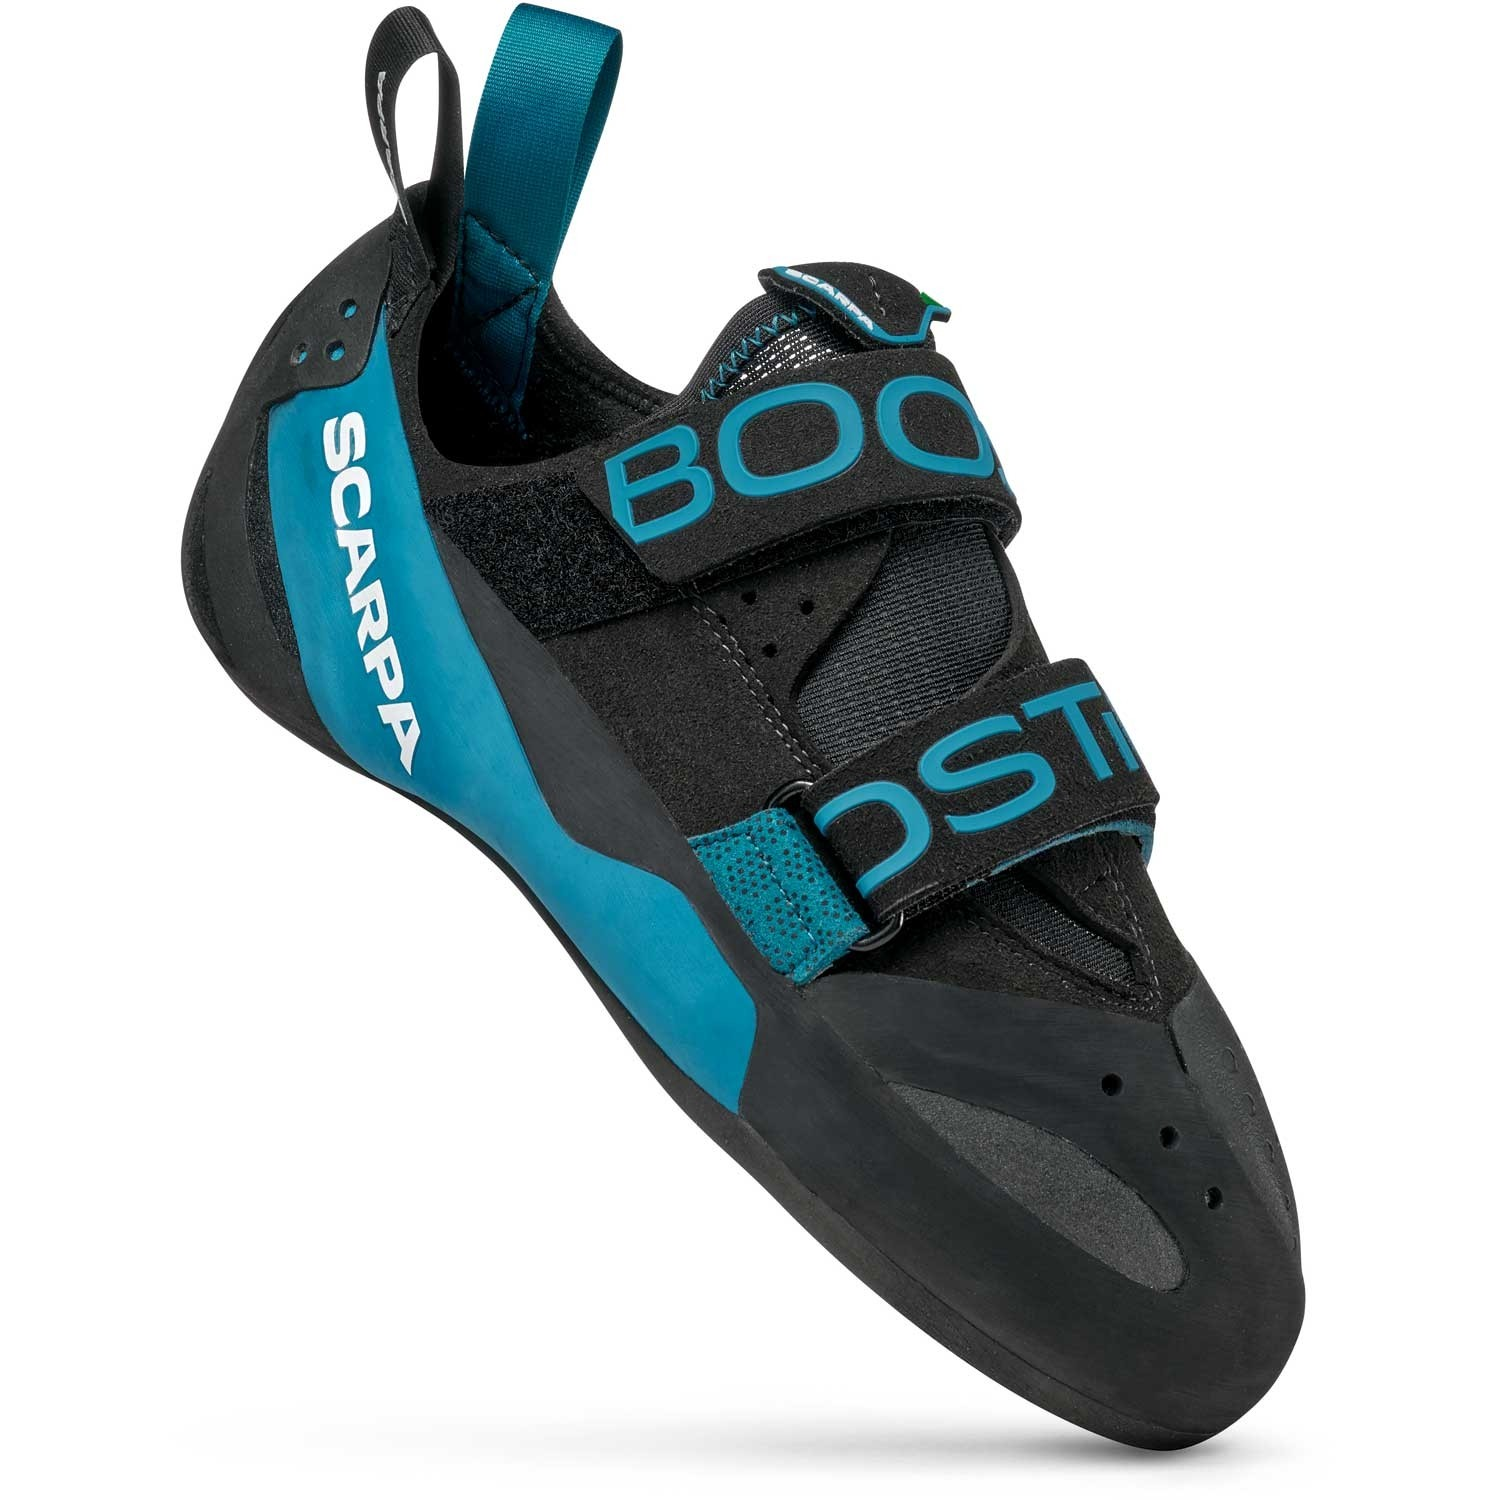 Scarpa Boostic Rock Climbing Shoe - Black/Azure